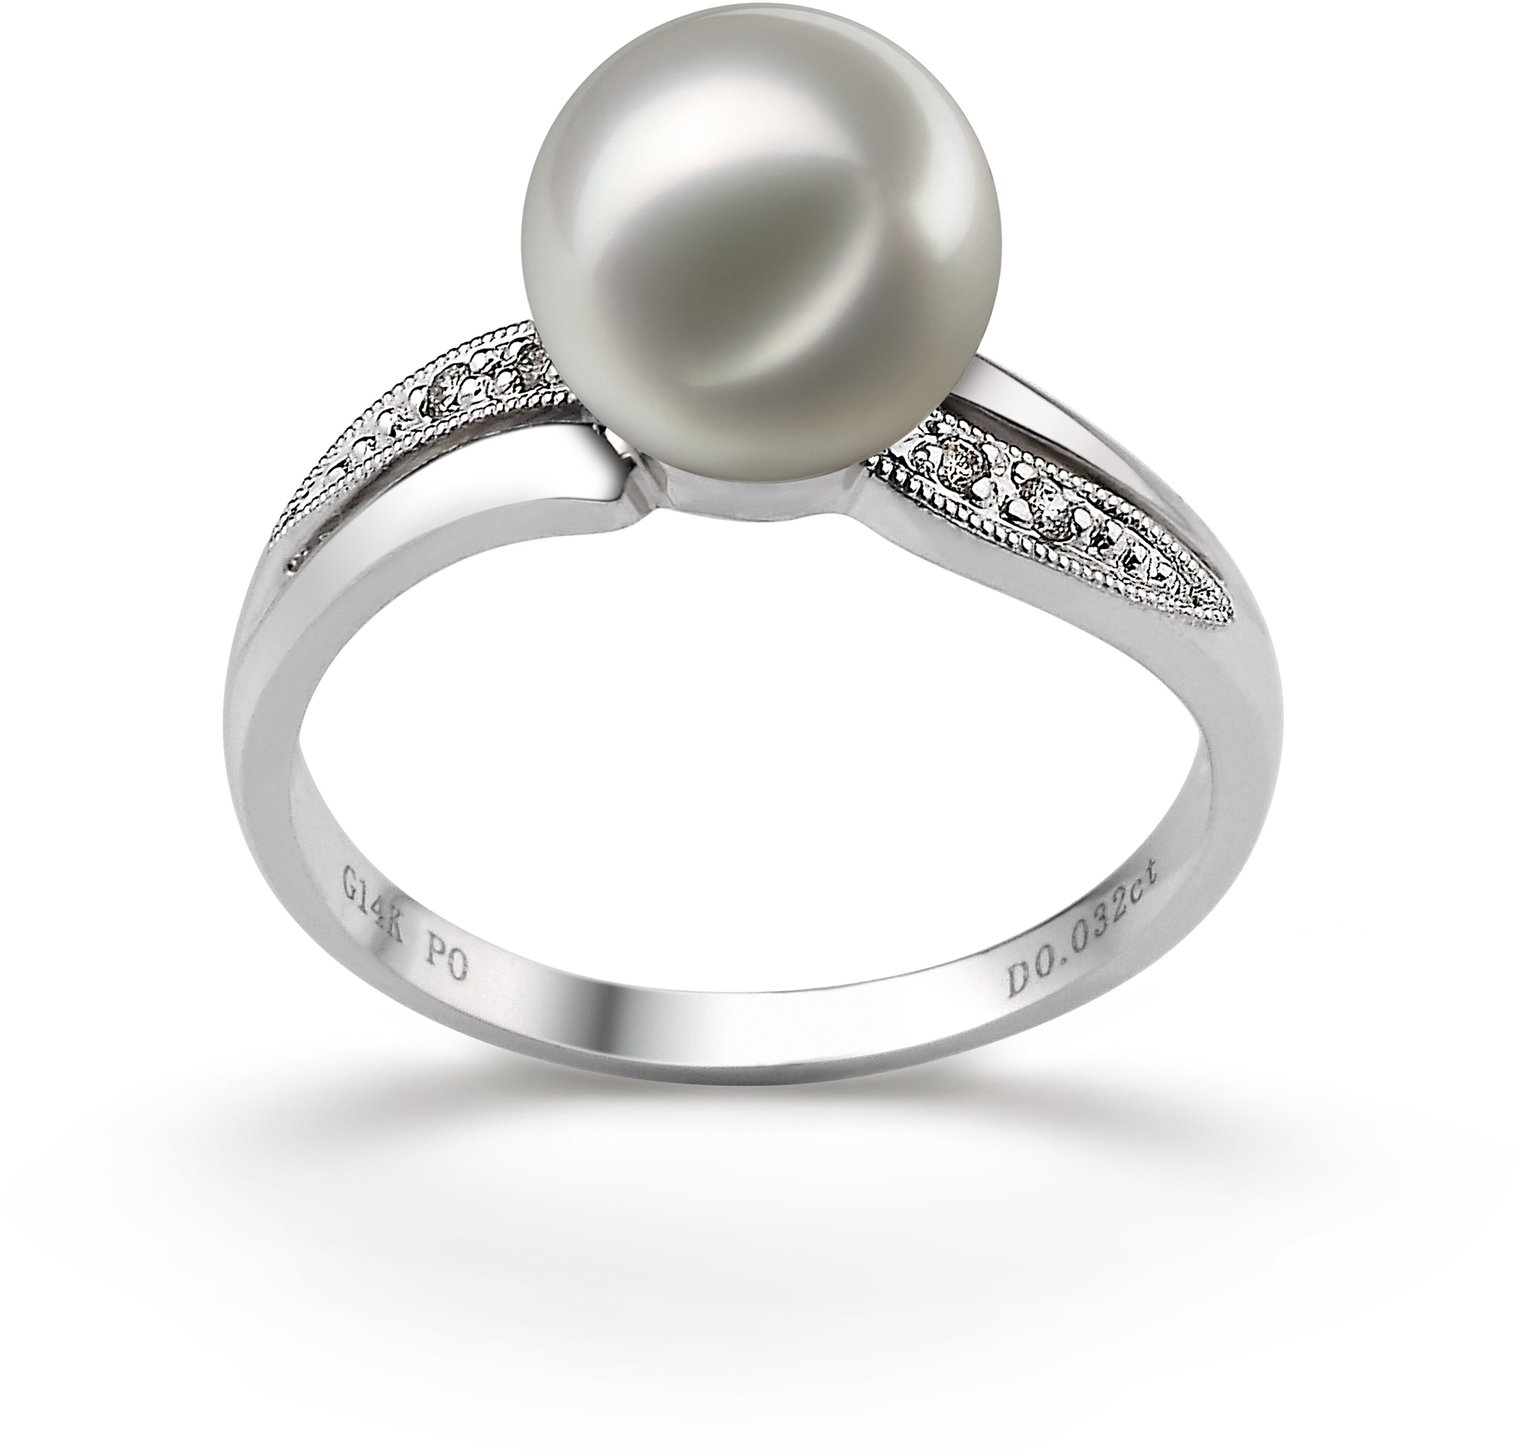 PearlsOnly - Caroline White 7-8mm AAA Quality Japanese Akoya 14K White Gold Cultured Pearl Ring - Size-6